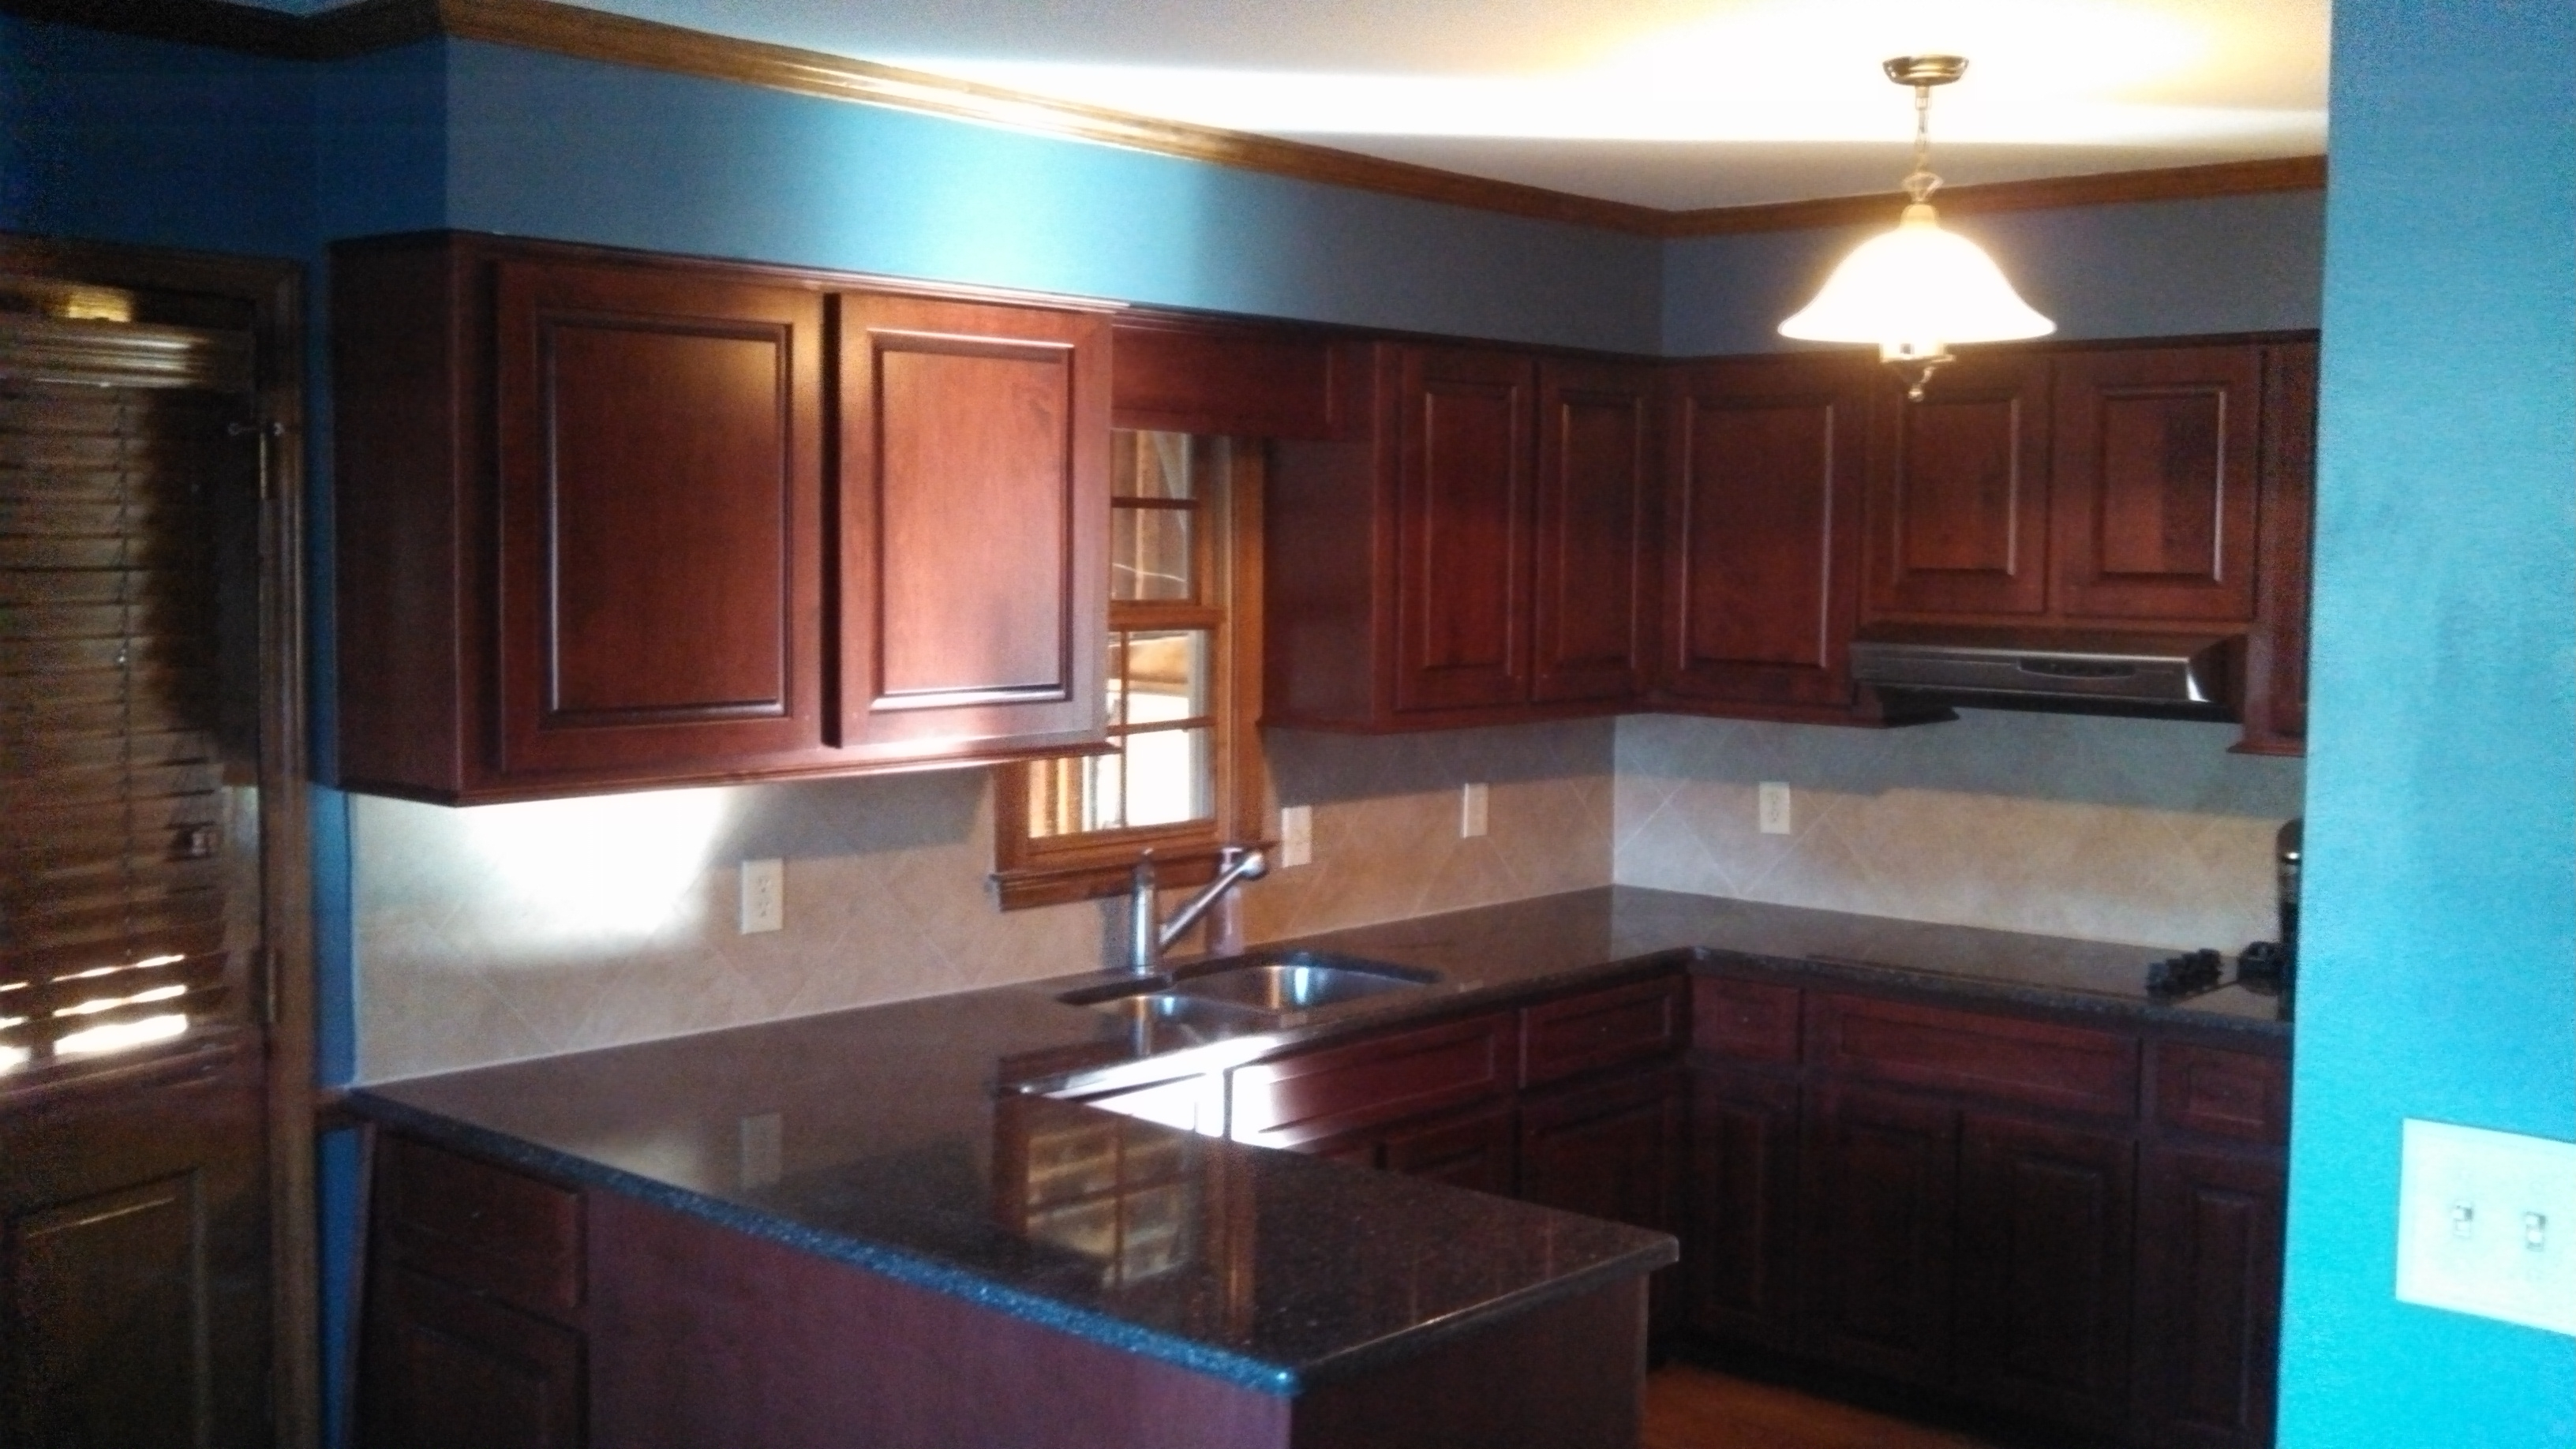 red kitchen cabinets turquoise blue walls boston cabinet cures